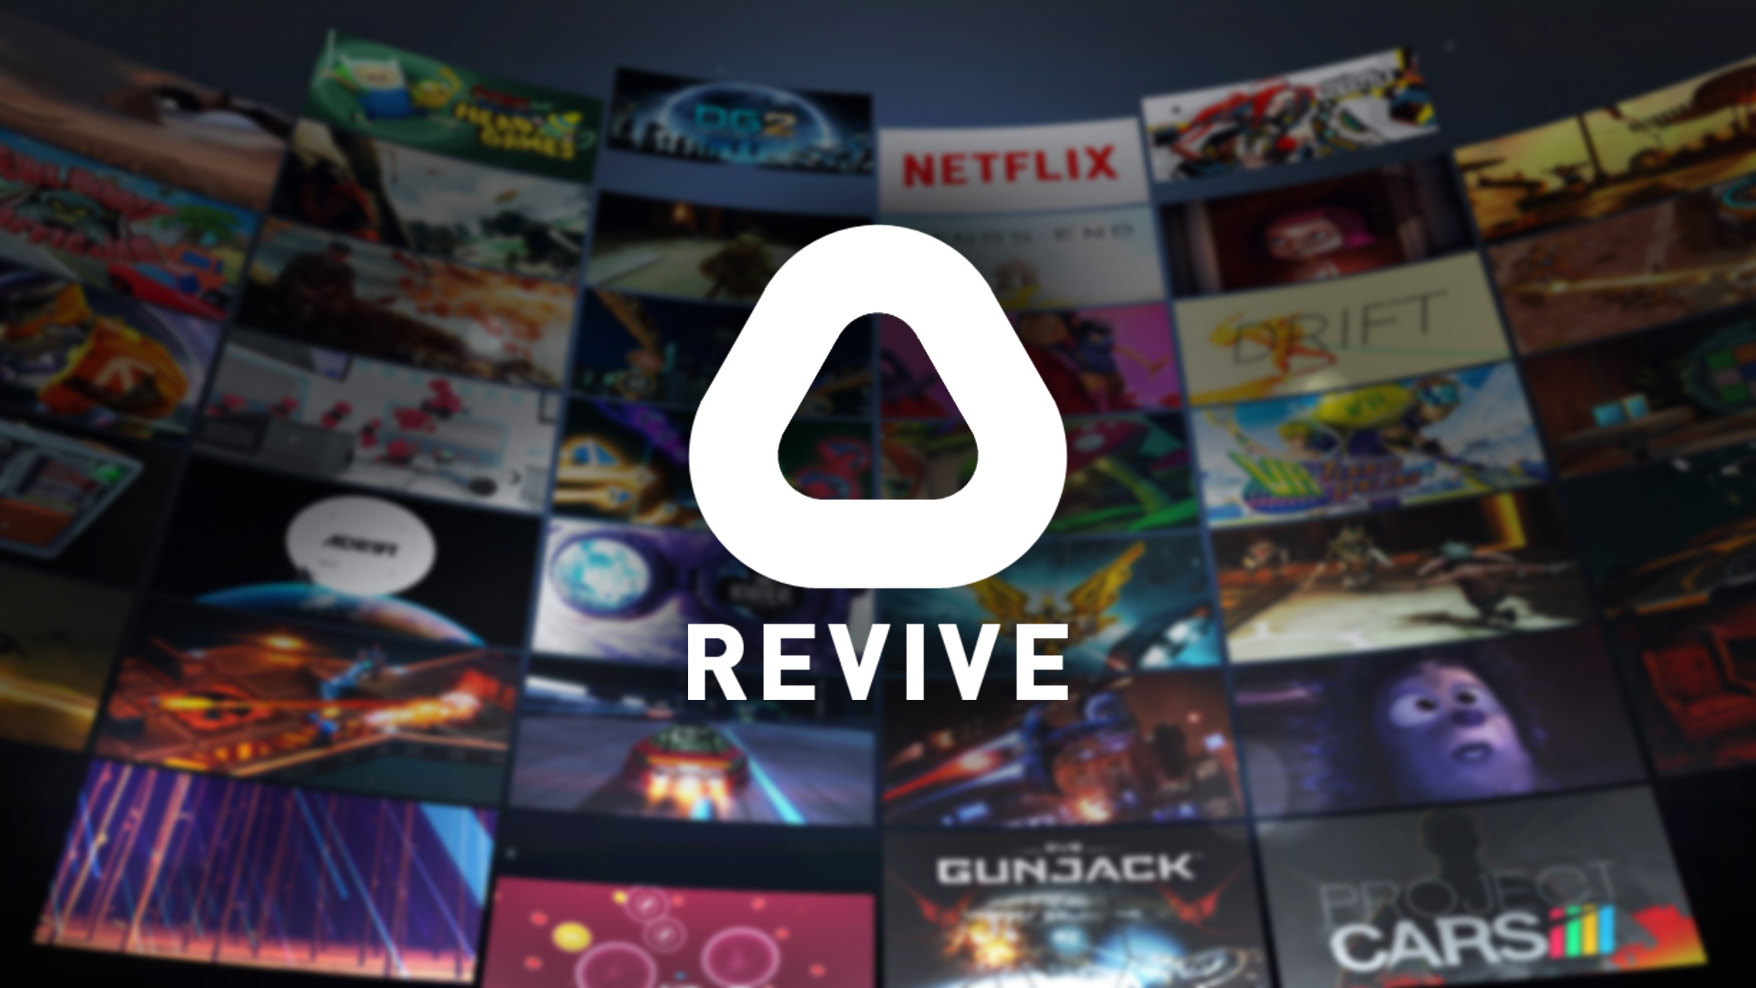 Oculus Exclusive Games Finally Feel Truly Playable with Index Controllers & Revive